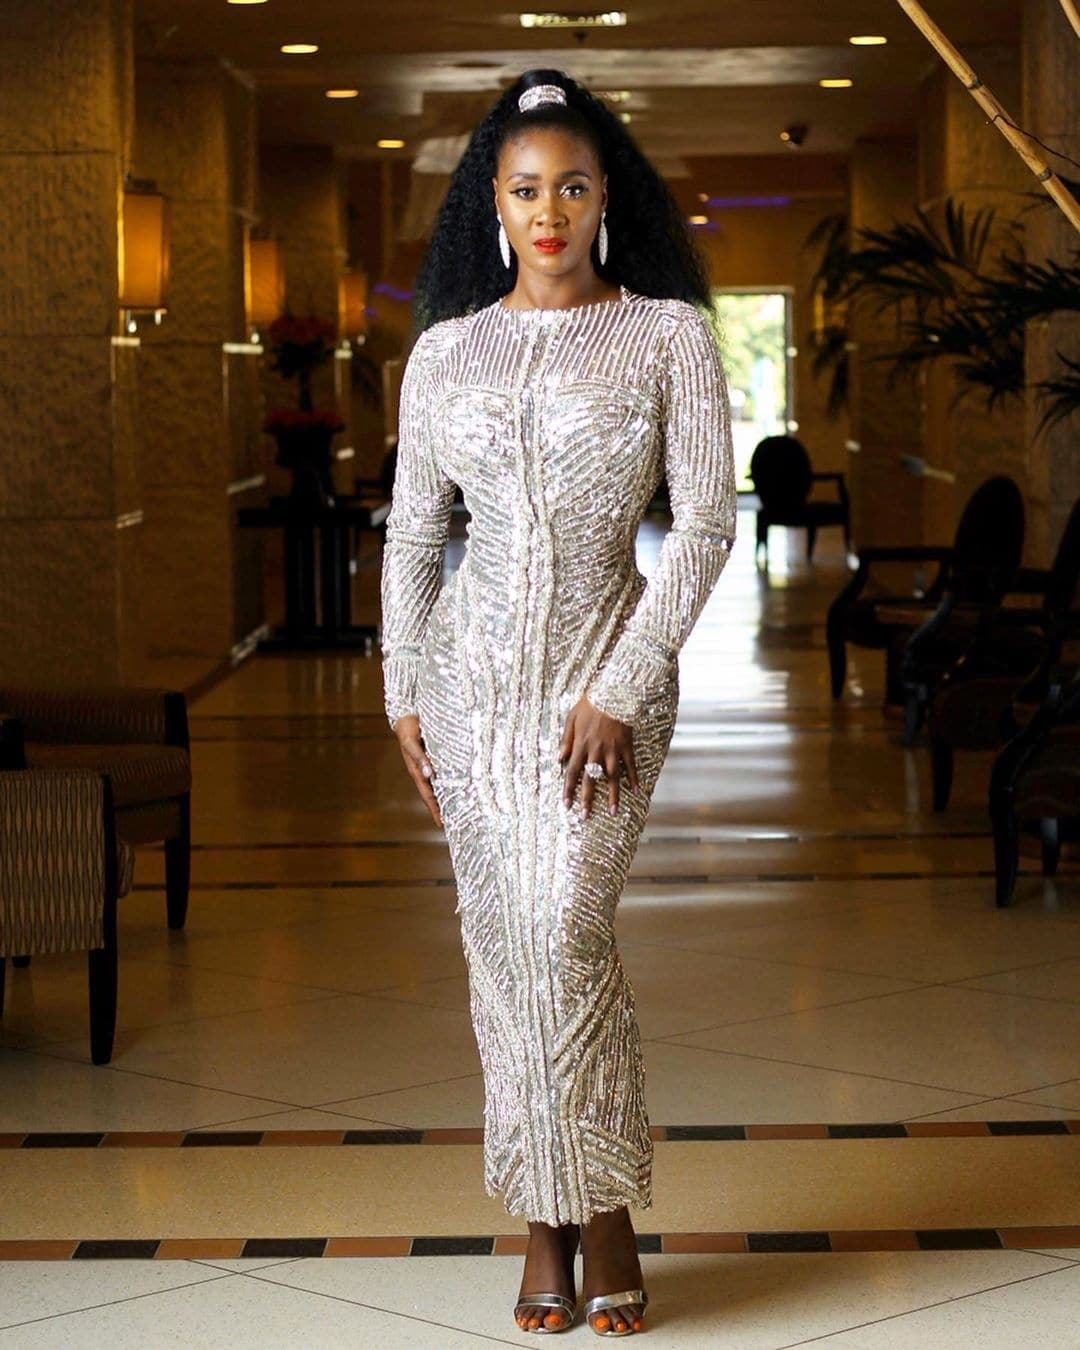 toni-tones-heres-how-nigerian-celebrities-want-you-to-dress-as-the-ideal-wedding-guest-with-style-for-weddings-this-december